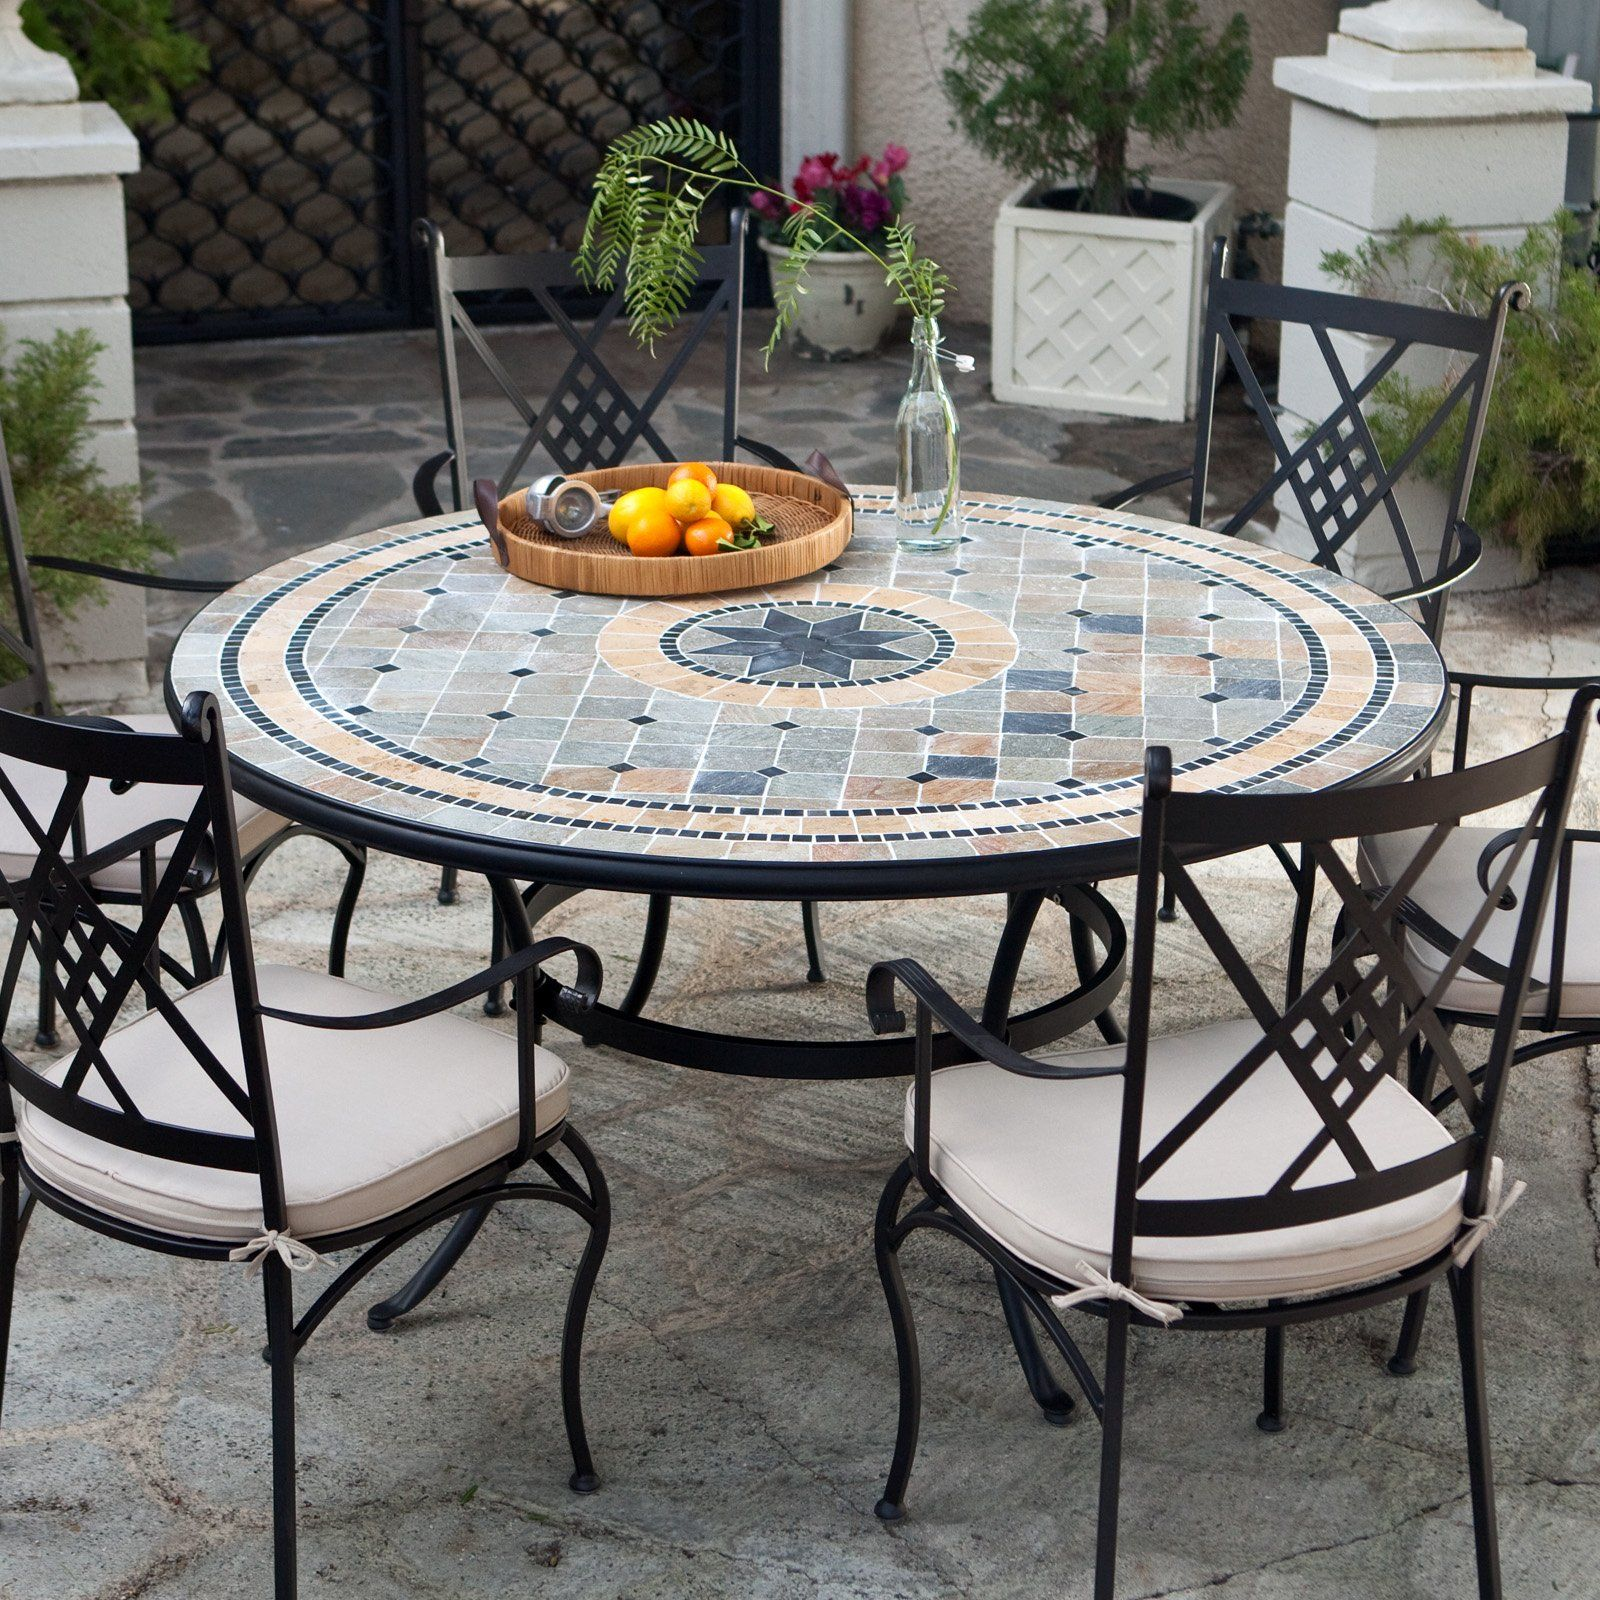 Palazetto Barcelona 60 In Round Mosaic Patio Dining Set Seats 6 2199 99